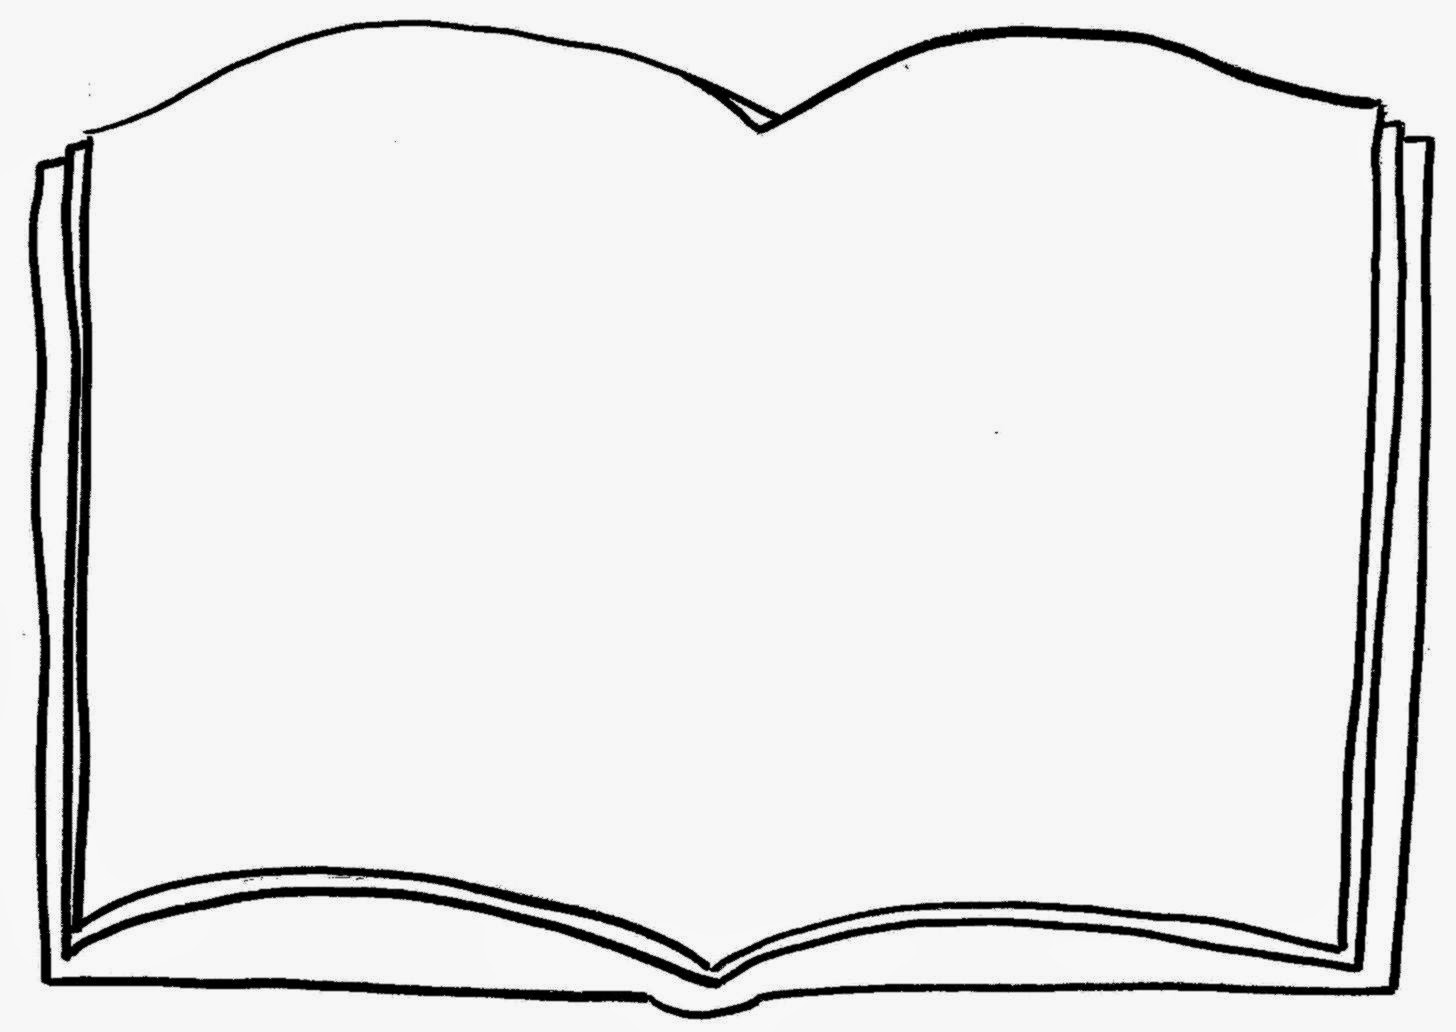 Open Book Coloring Page Free Coloring Pa-Open book coloring page free coloring pages clip art-6